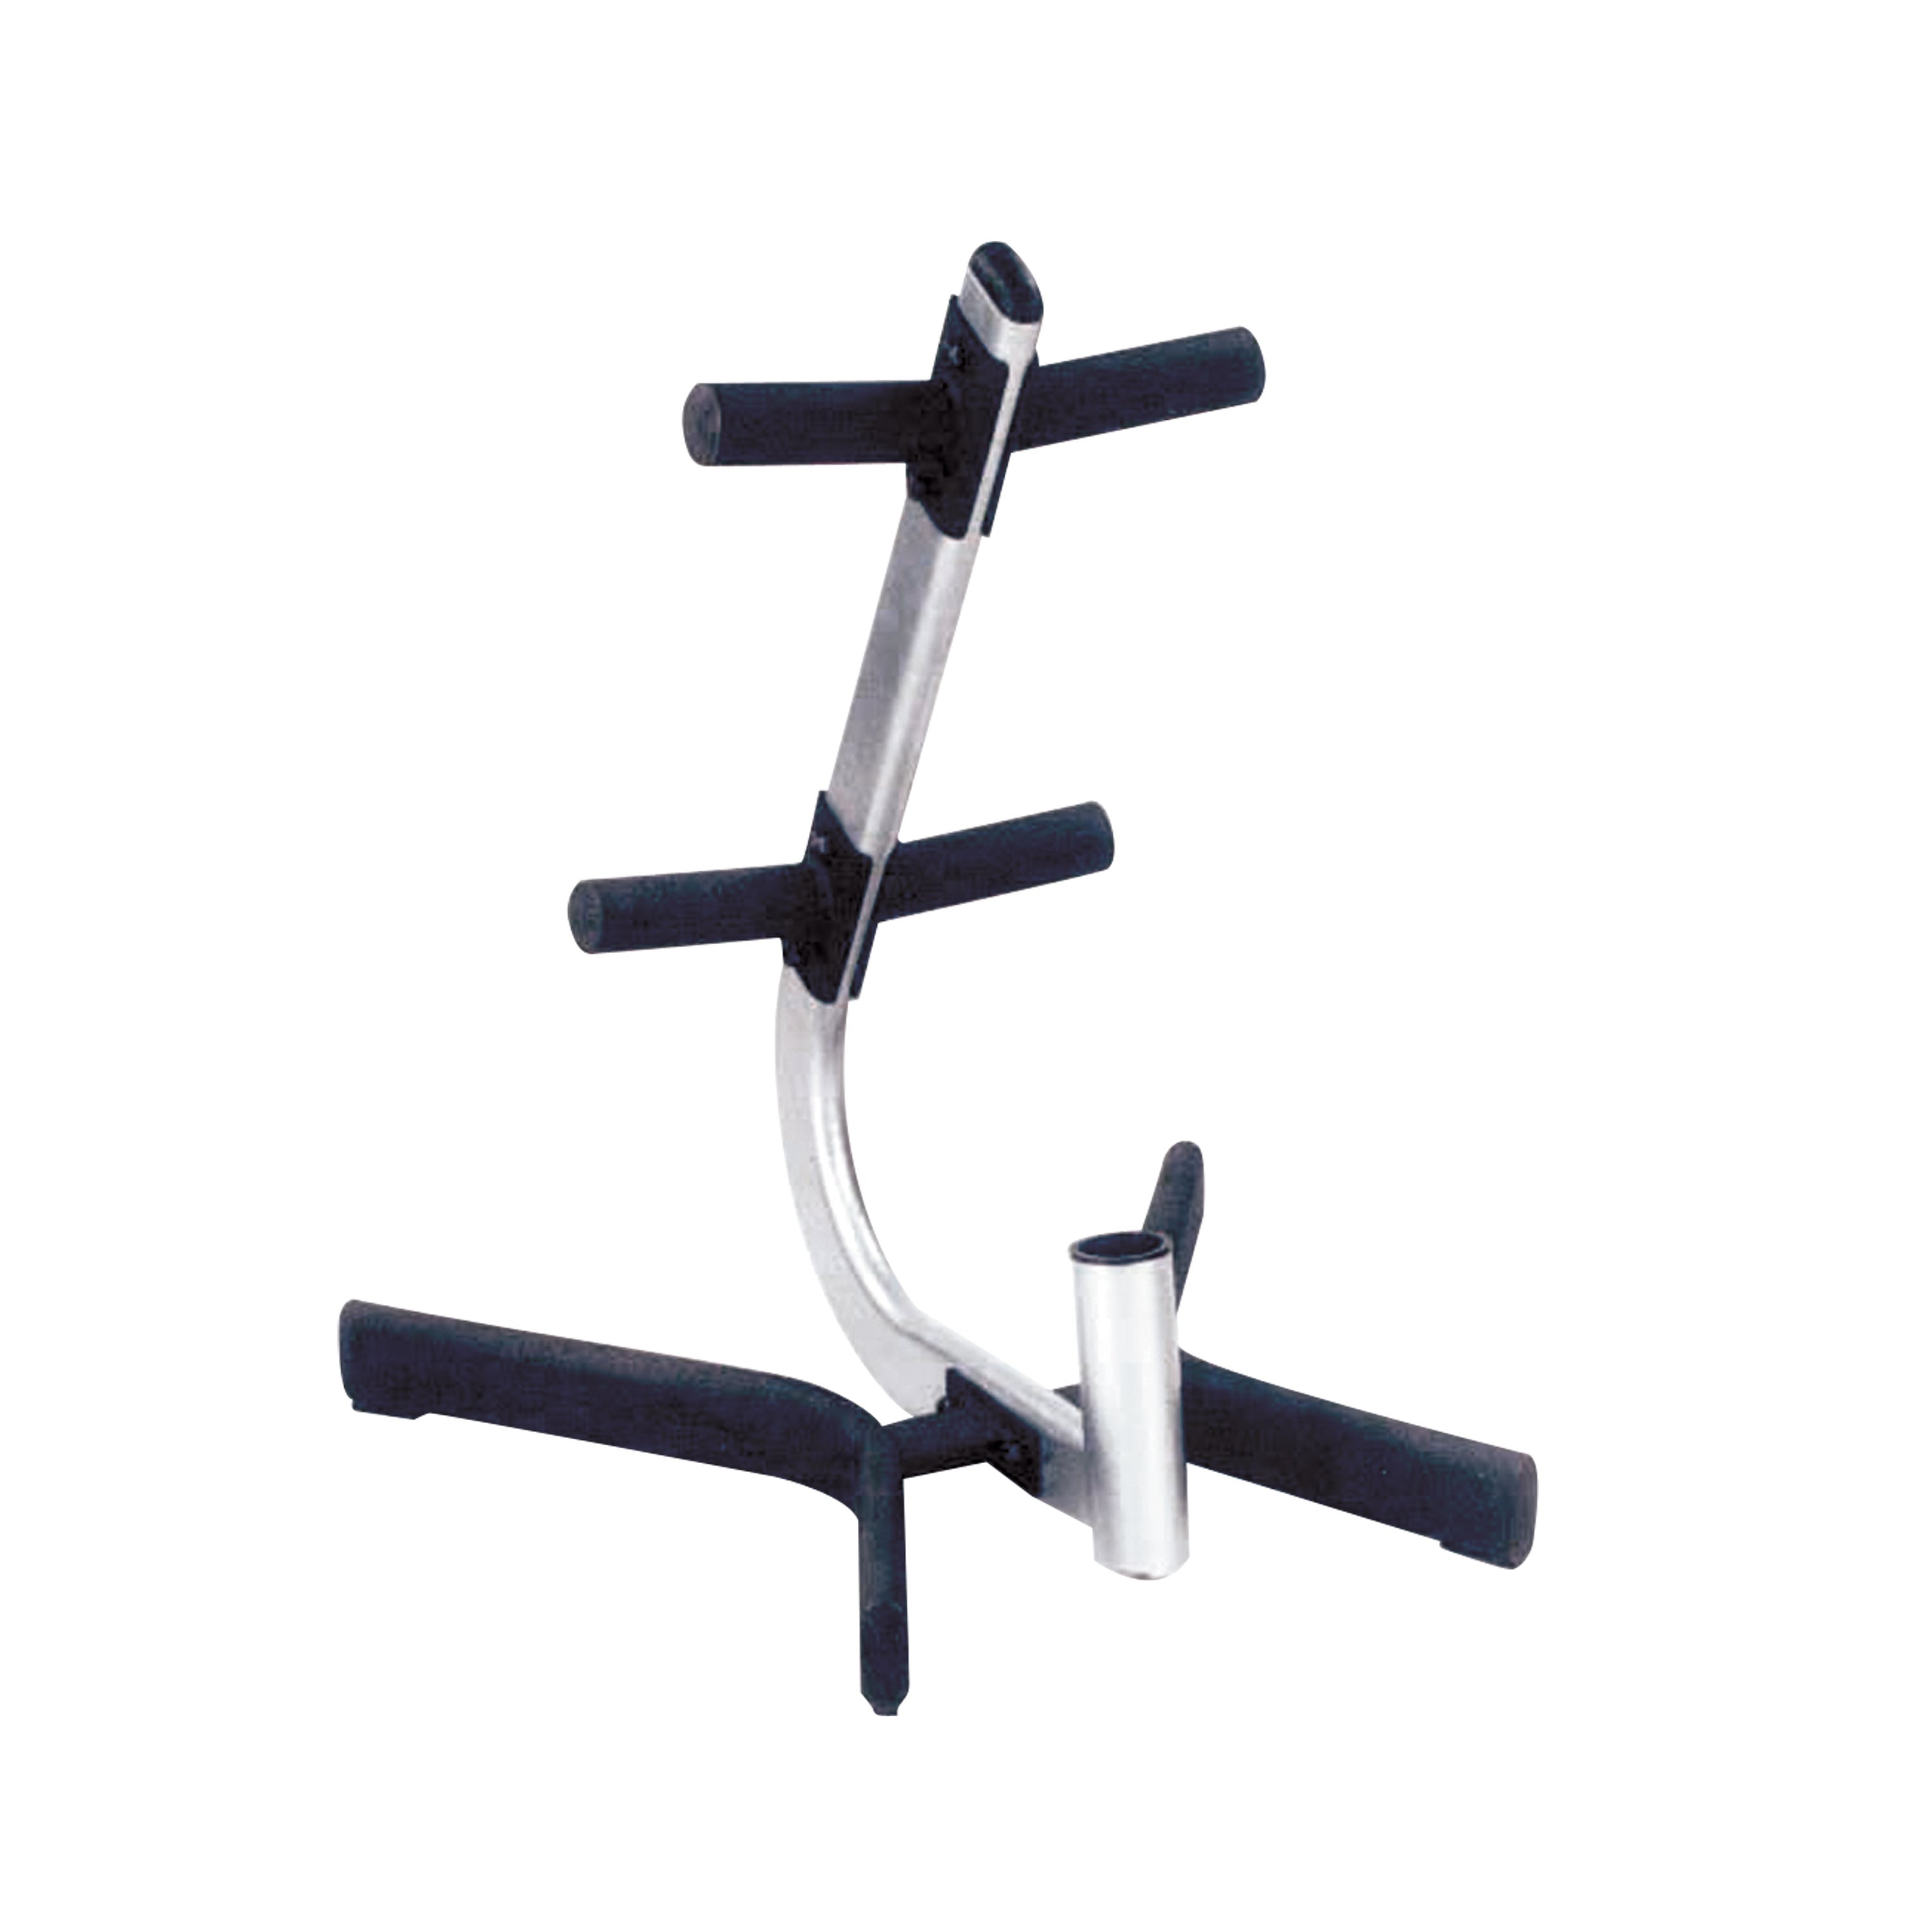 CAP Barbell 2-inch Plate and Bar Storage Rack